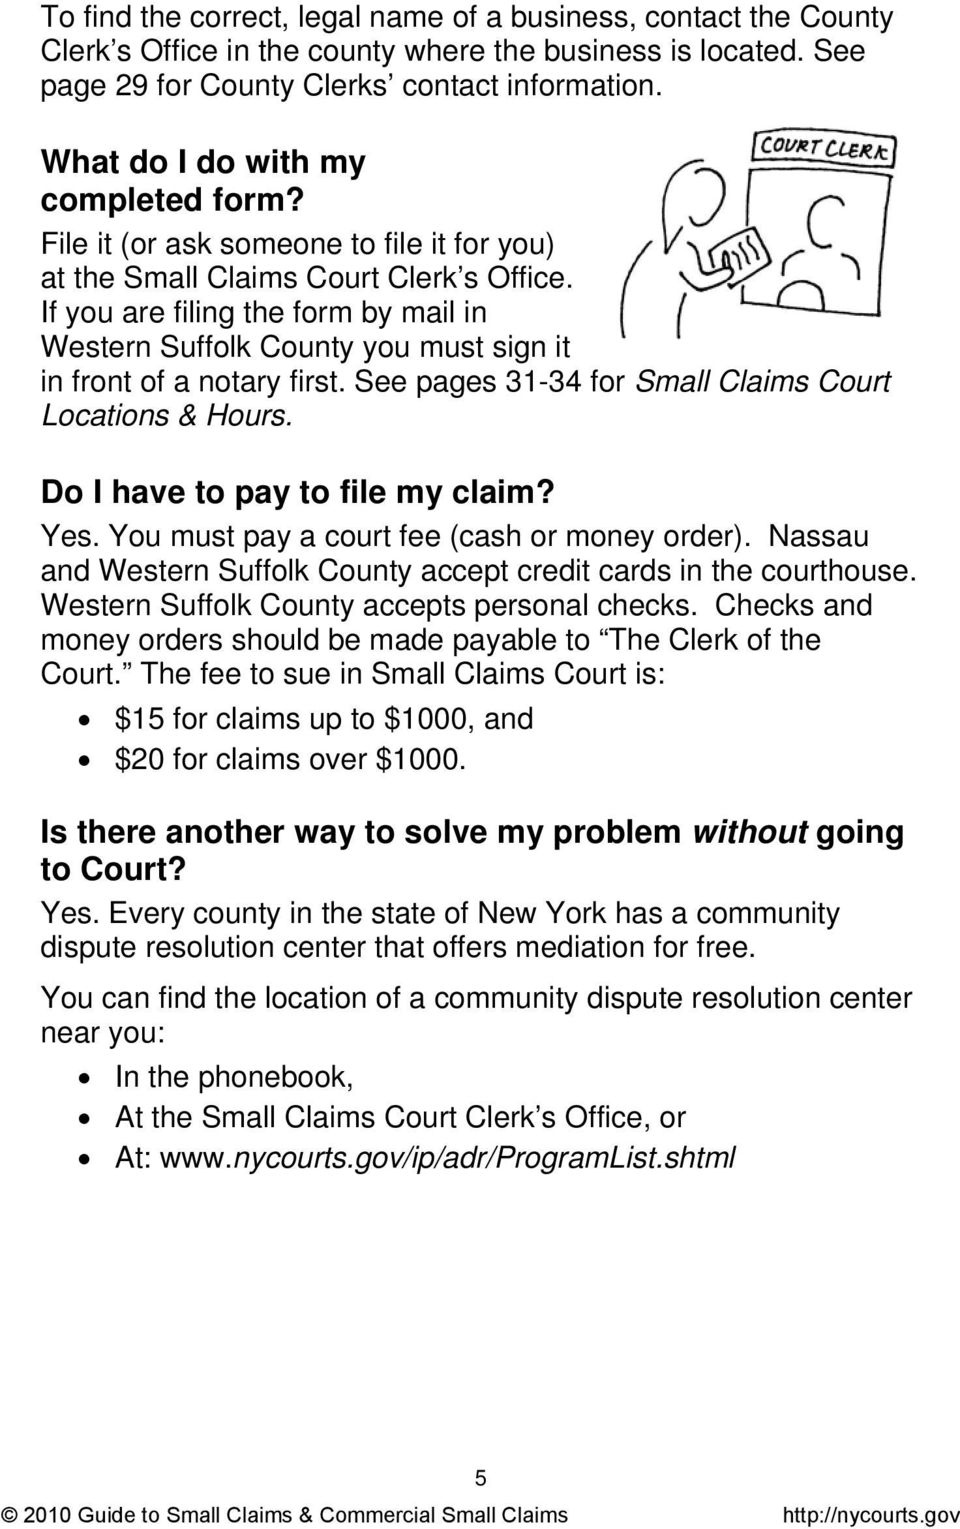 If you are filing the form by mail in Western Suffolk County you must sign it in front of a notary first. See pages 31-34 for Small Claims Court Locations & Hours. Do I have to pay to file my claim?